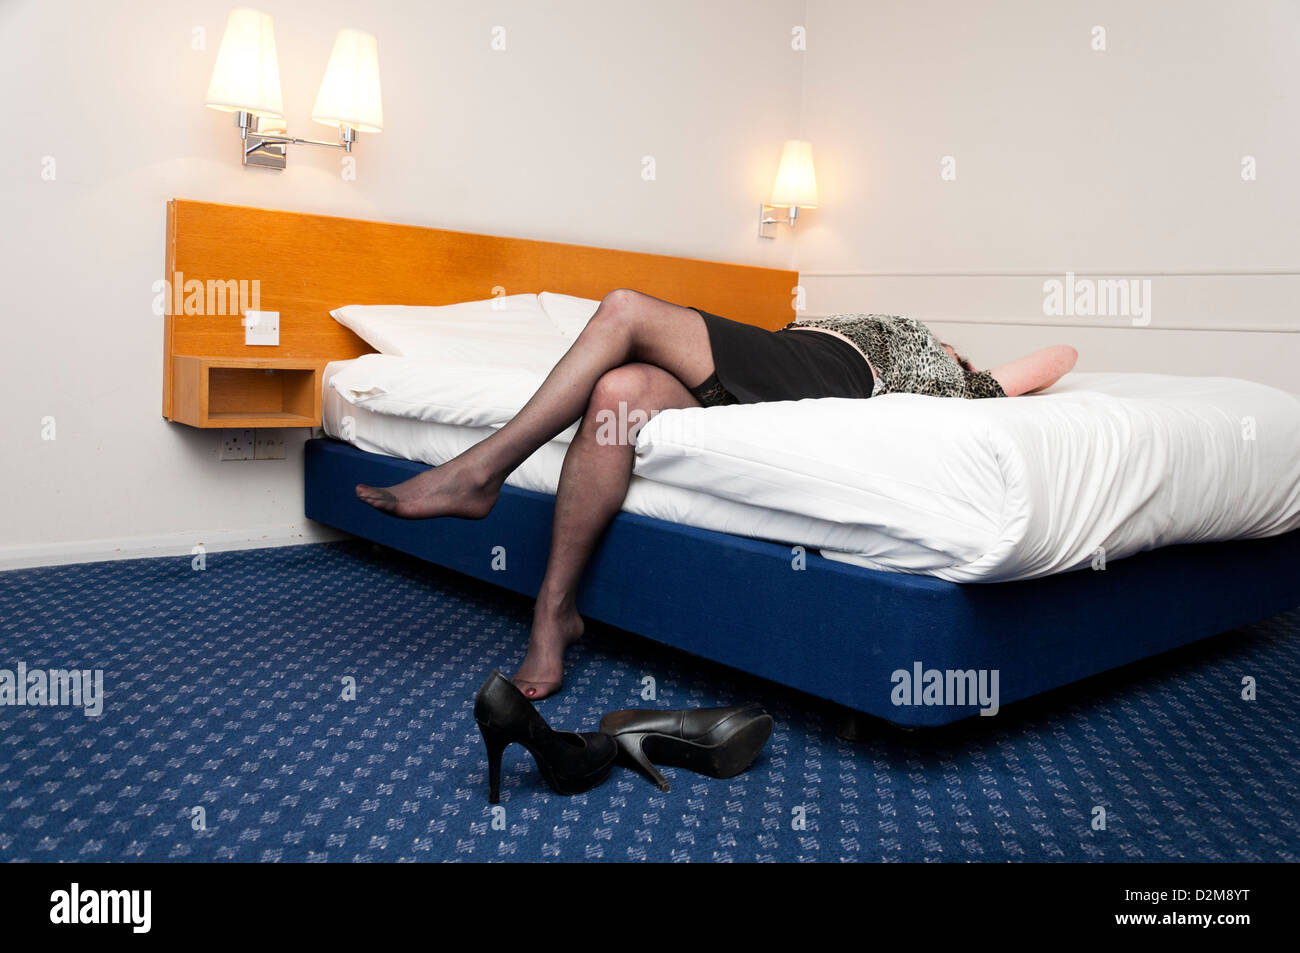 Older woman laying back on bed in hotel room. - Stock Image